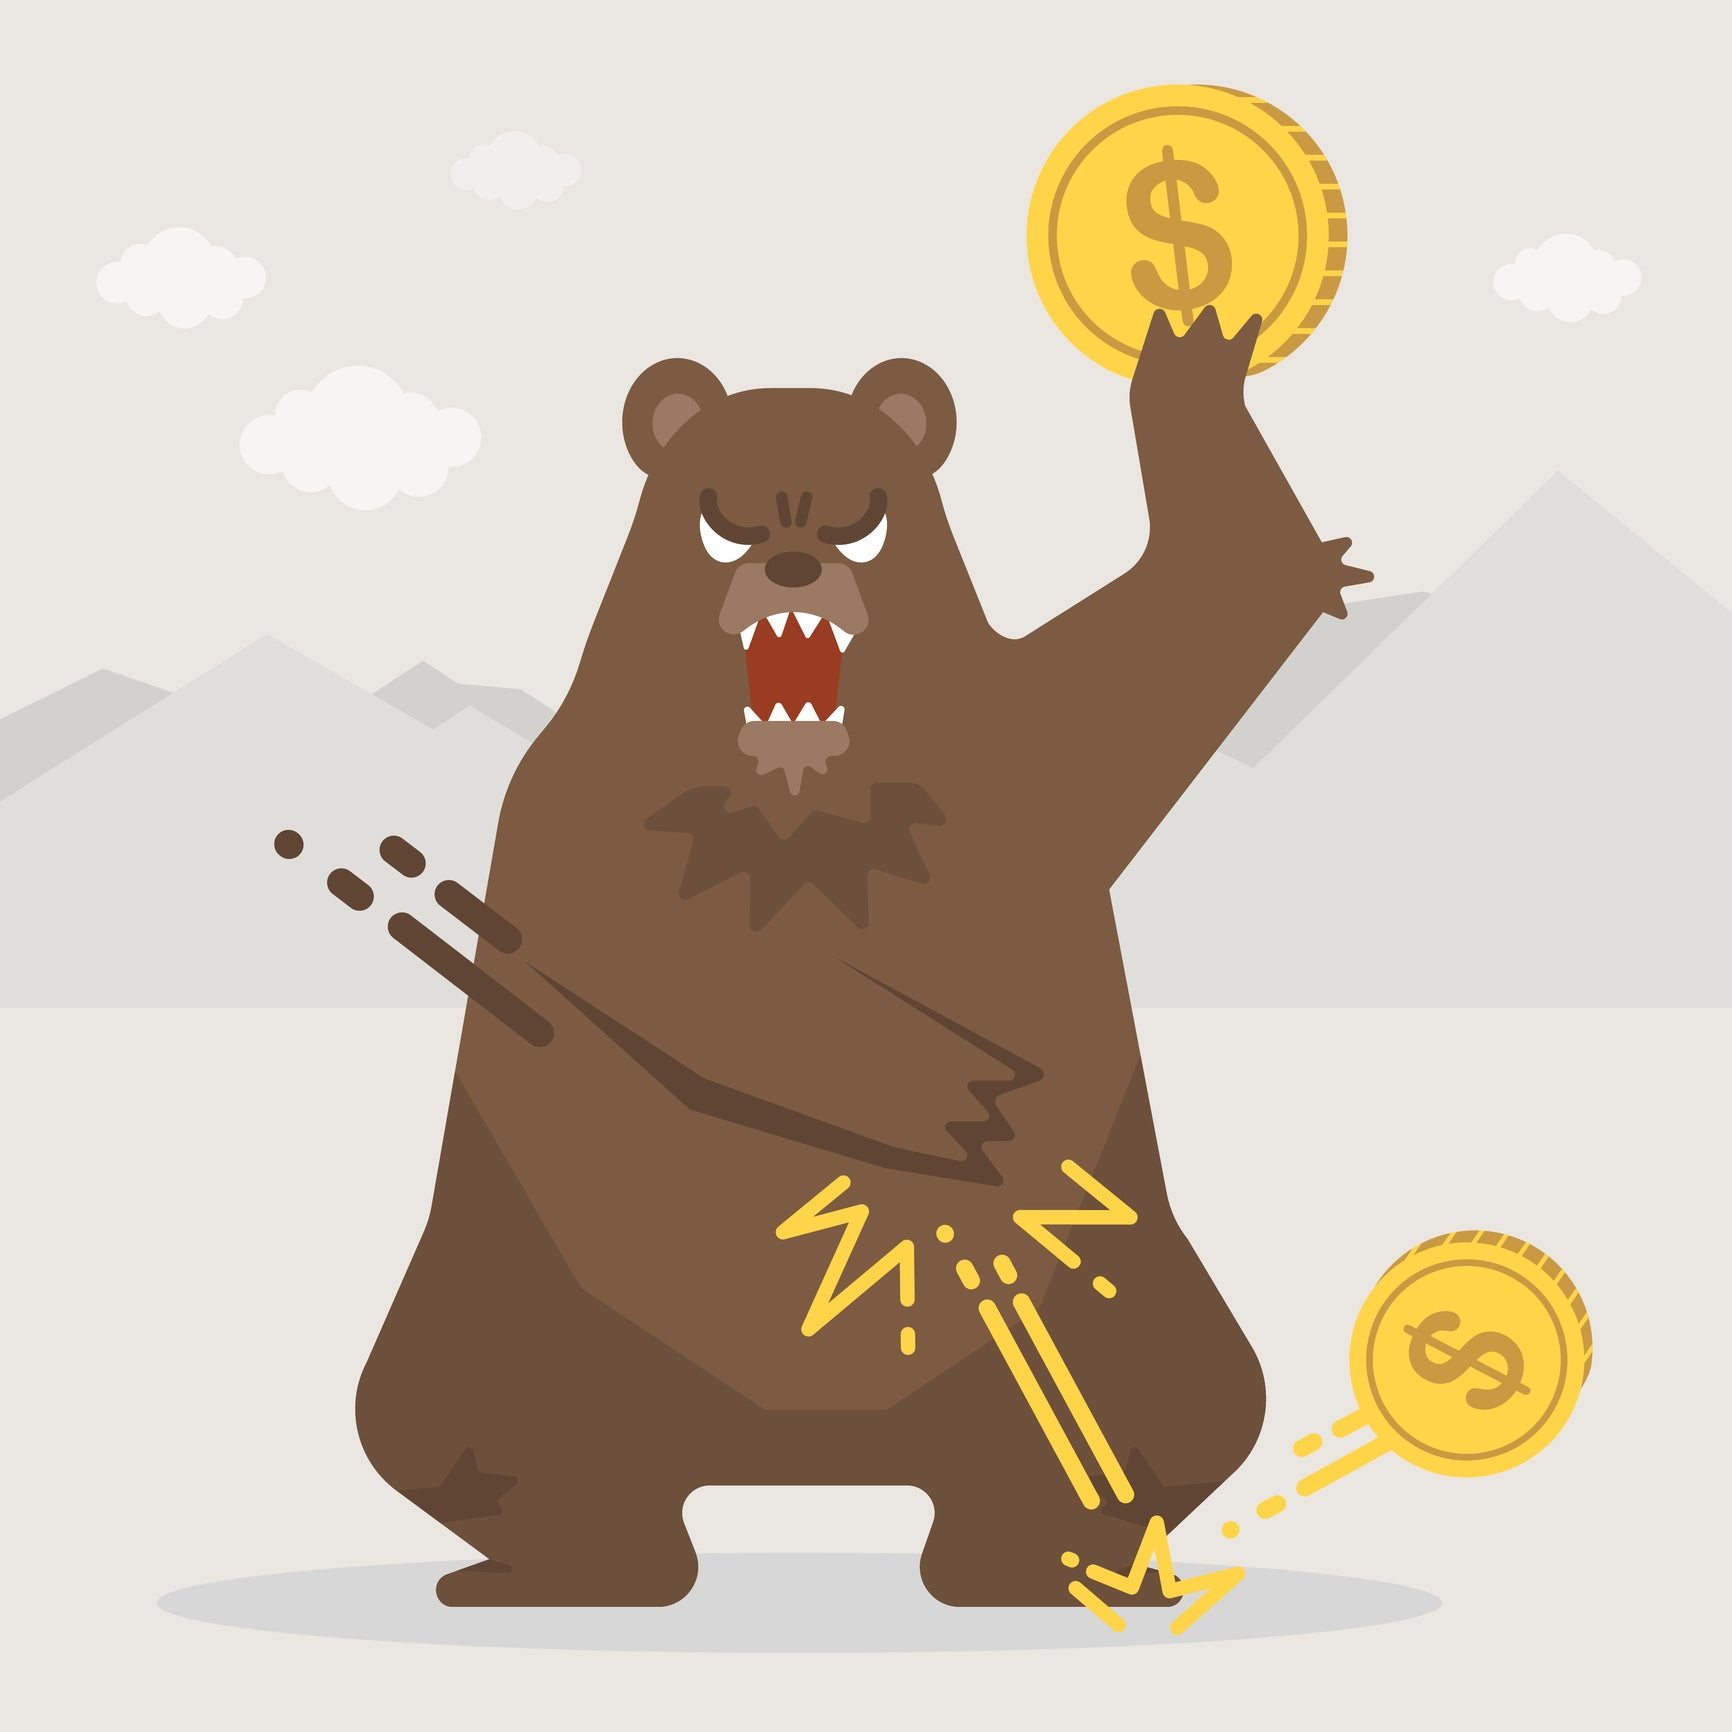 2 Hyper-Growth Stocks to Buy in the Next Bear Market